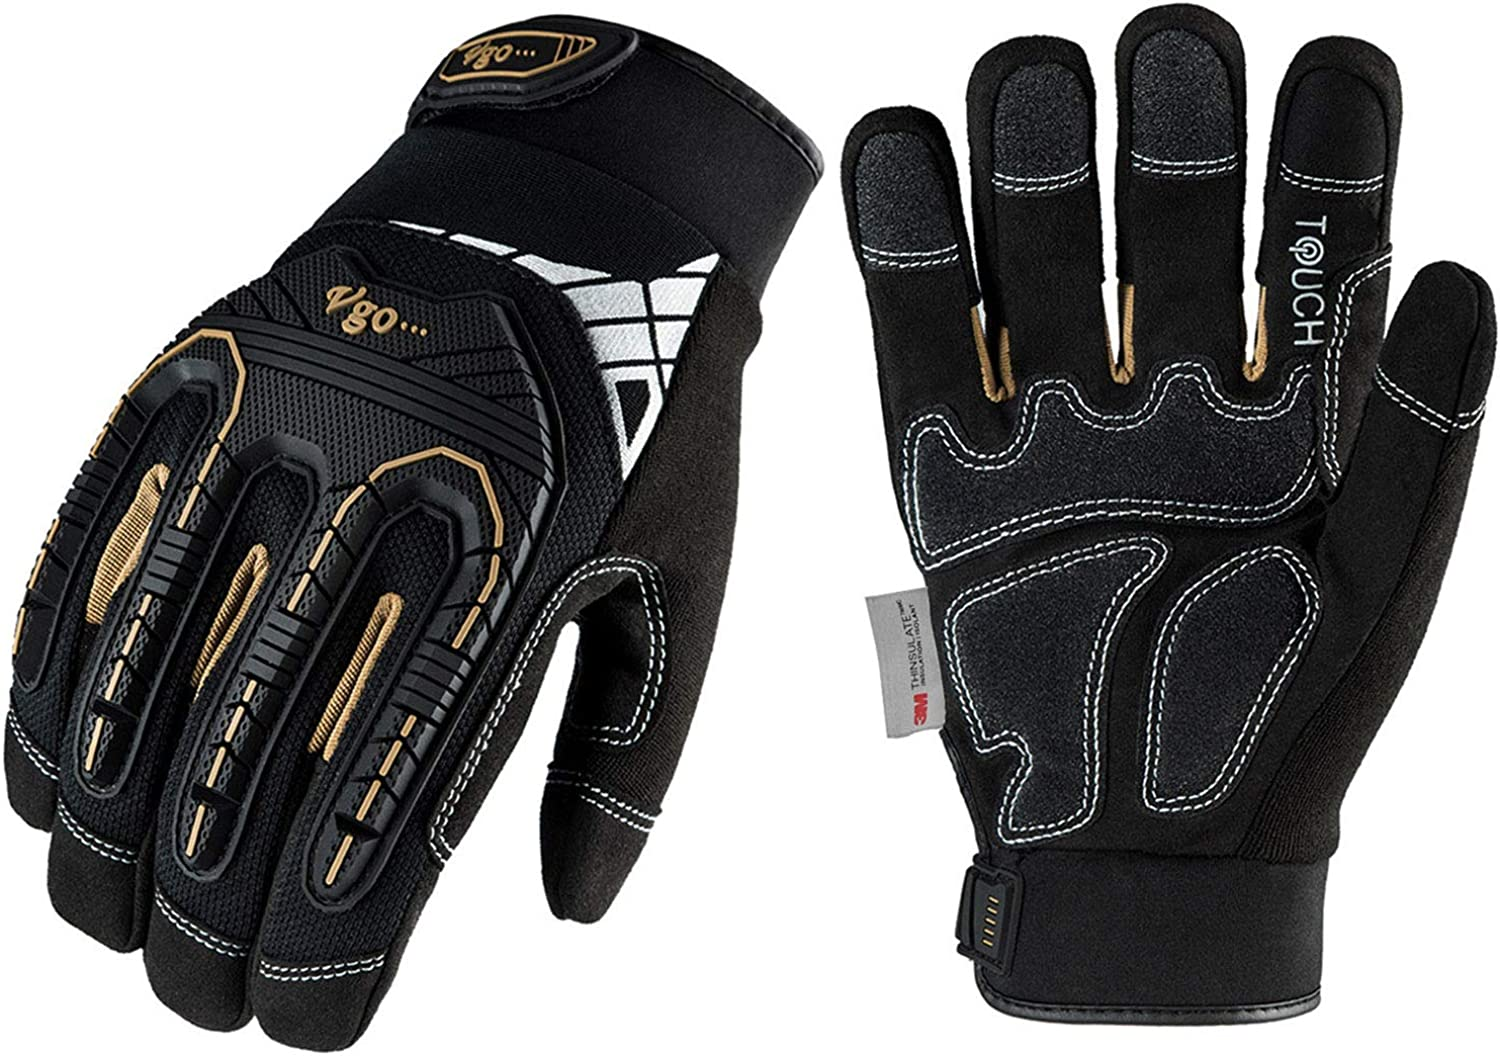 Vgo Heavy-Duty Synthetic Leather ! Super beauty product restock quality top! Rig Lowest price challenge Gloves Mechanic Work